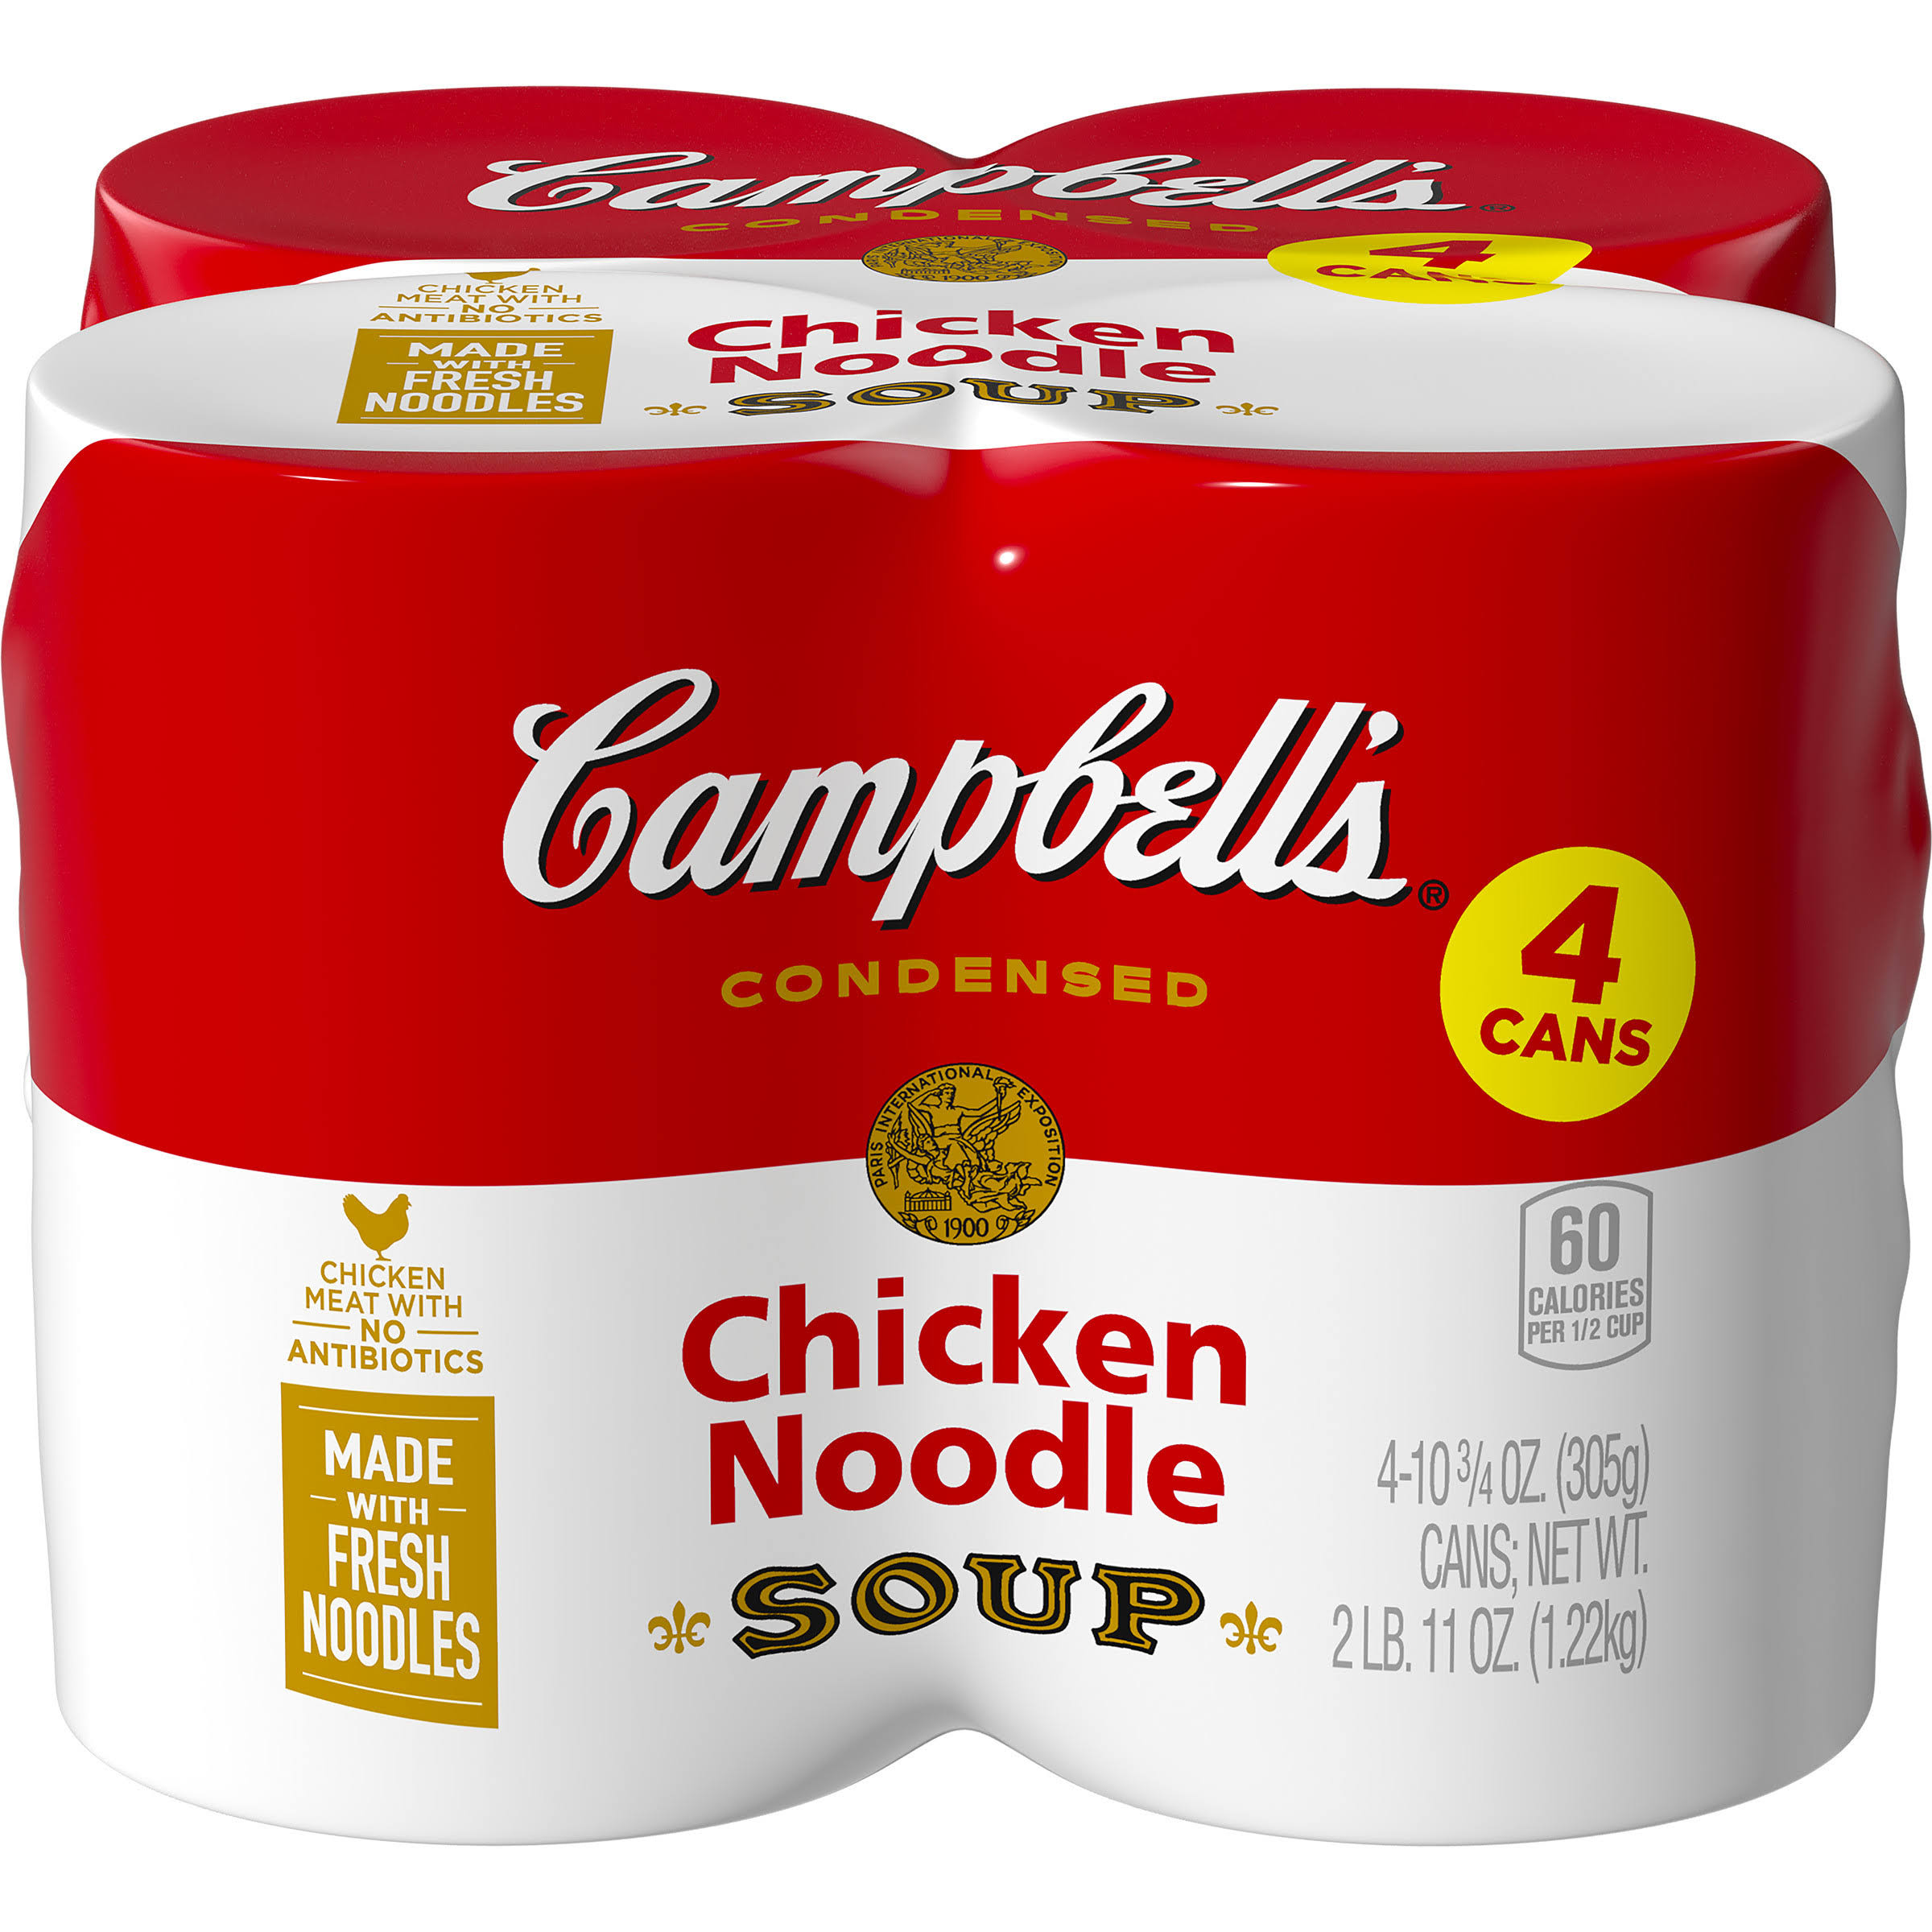 Campbells Condensed Chicken Noodle Soup - 10.75oz, 4ct